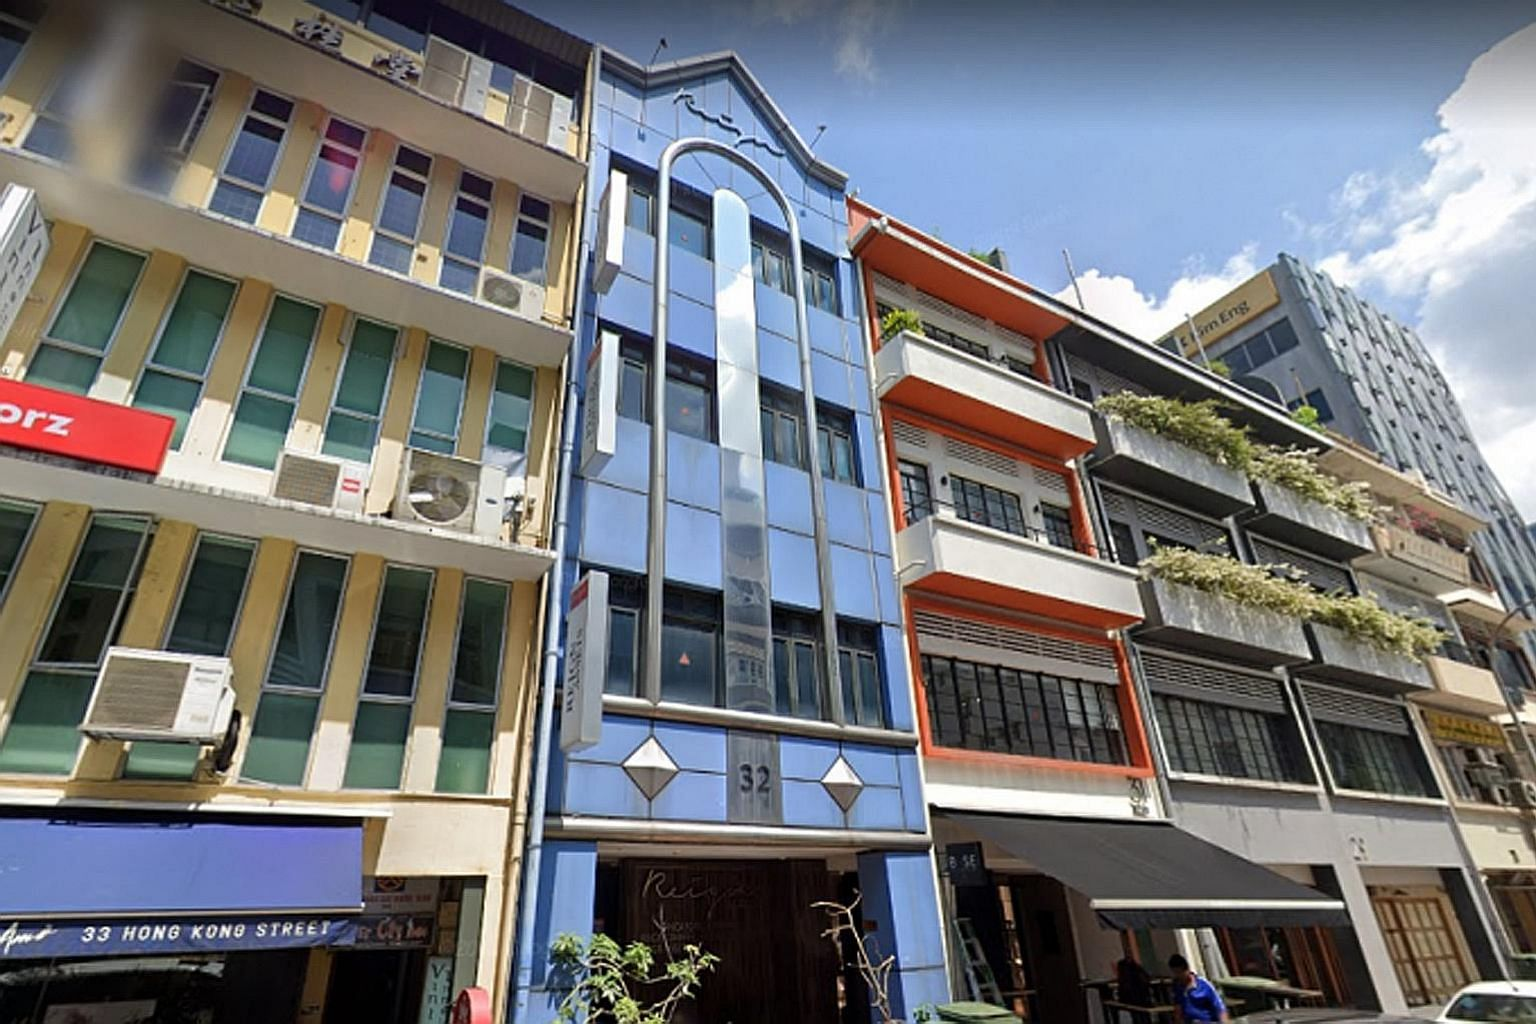 The 32 Hongkong Street shophouse (in blue) sits on an envelope control site spanning about 1,717 sq ft and is zoned for commercial use. It has an allowable building height of up to six storeys and a plot ratio of 4.2.